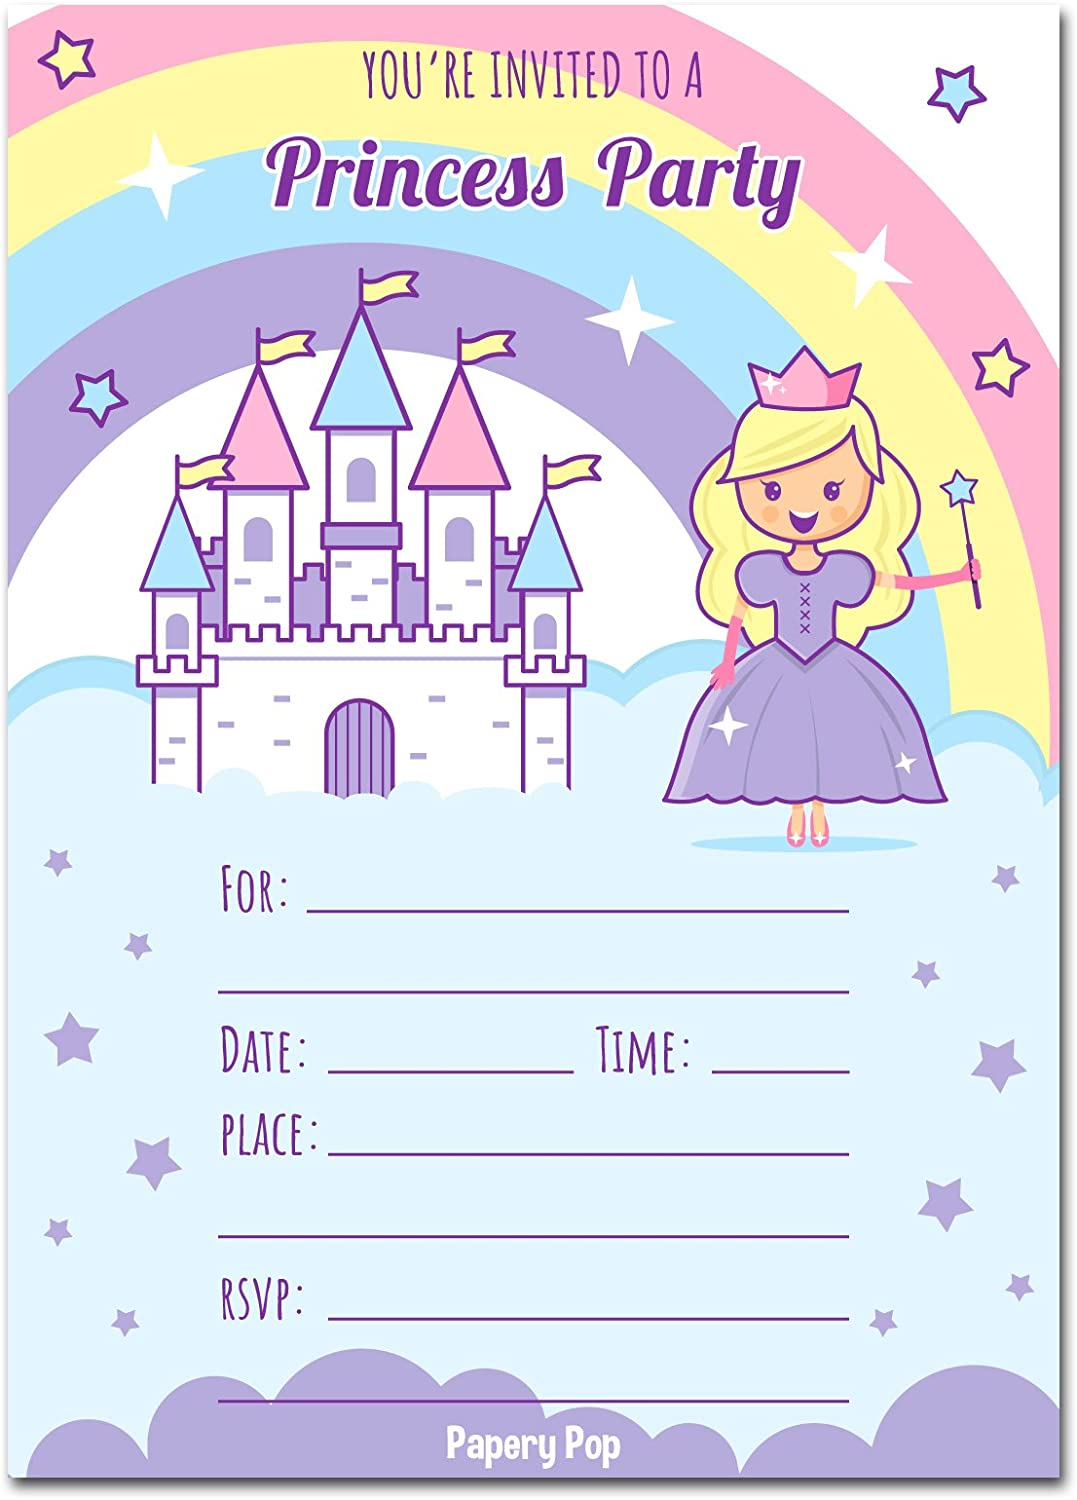 Magical Fairy Princess Birthday Party Invitations 20 5x7 Fill in Cards with Twenty White Envelopes by AmandaCreation 20 5x7 Fill in Cards with Twenty White Envelopes by AmandaCreation Amanda Creation